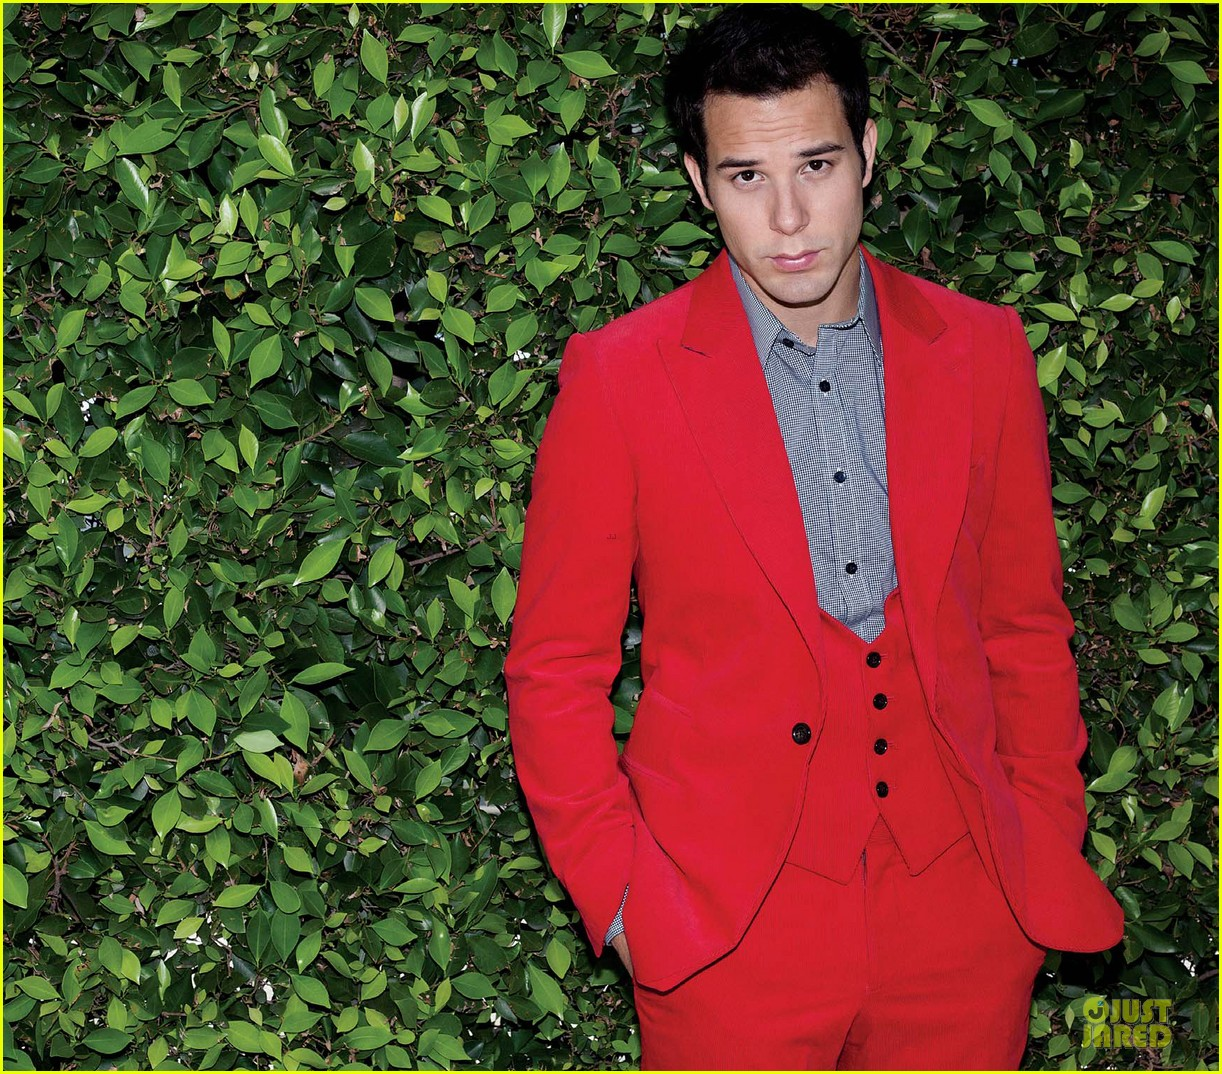 quotskylar astinquot